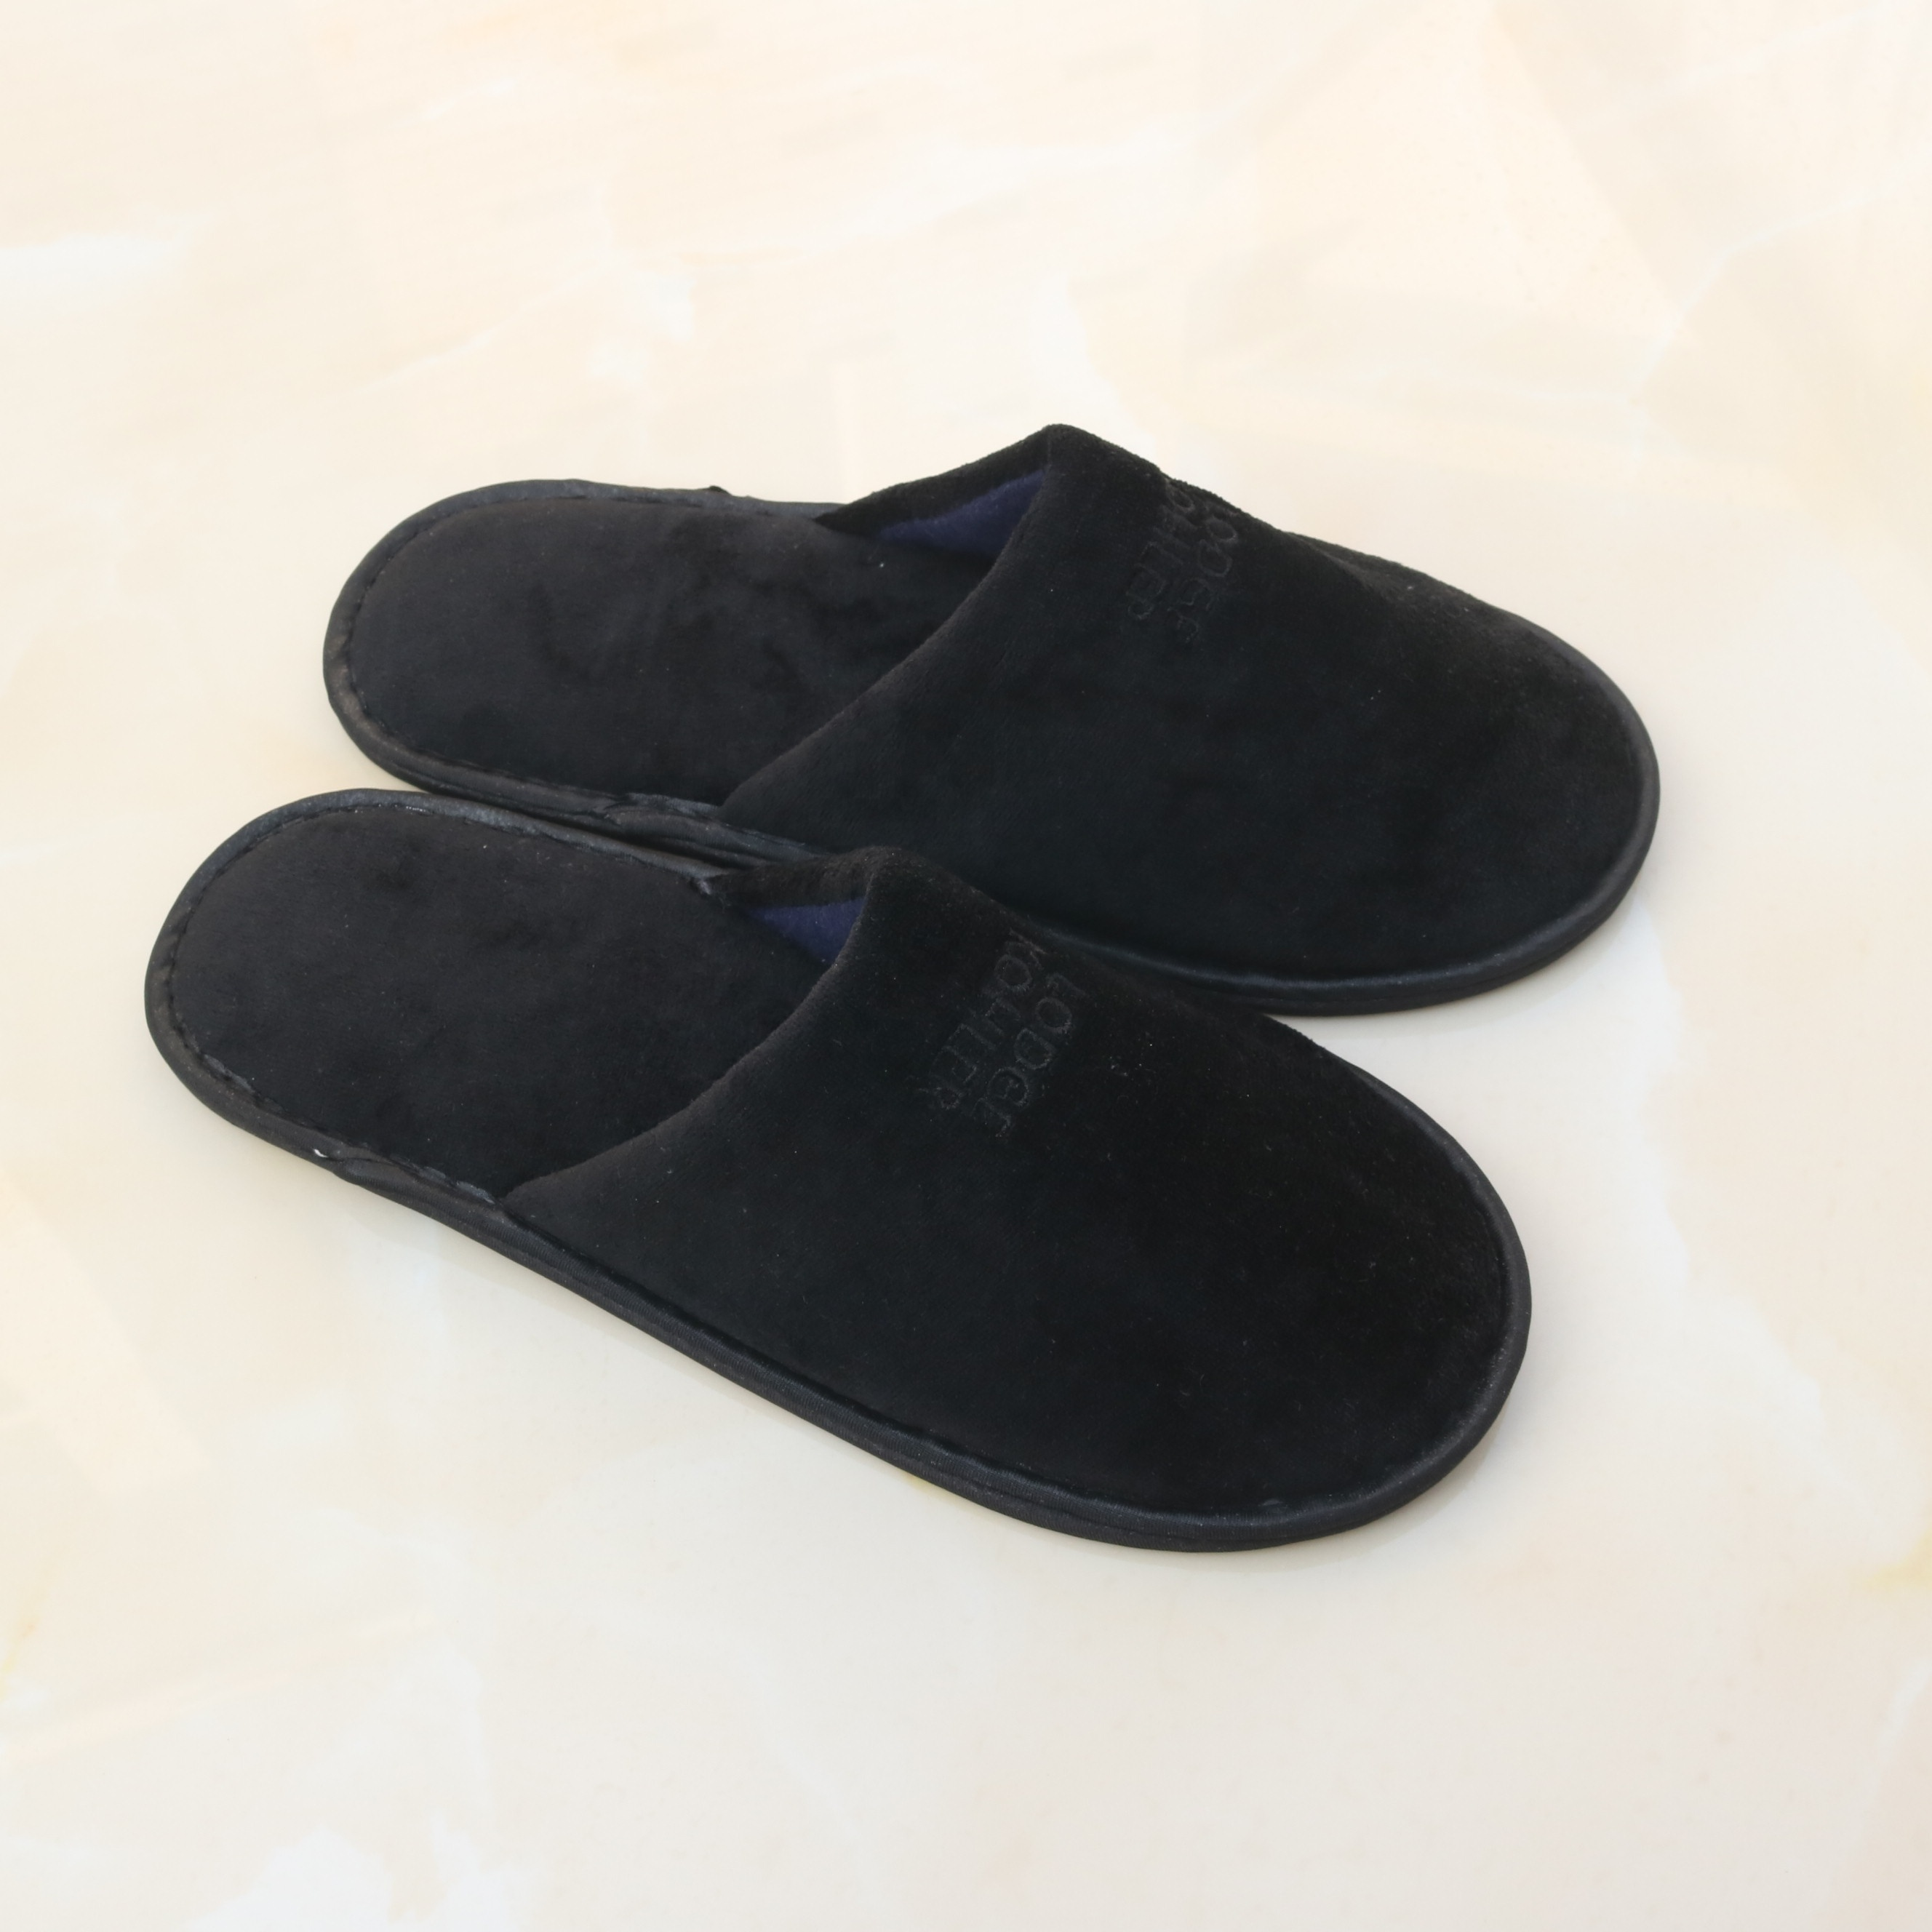 Top quality soft black velvet hotel slippers for 5 star hotel with black customized logo